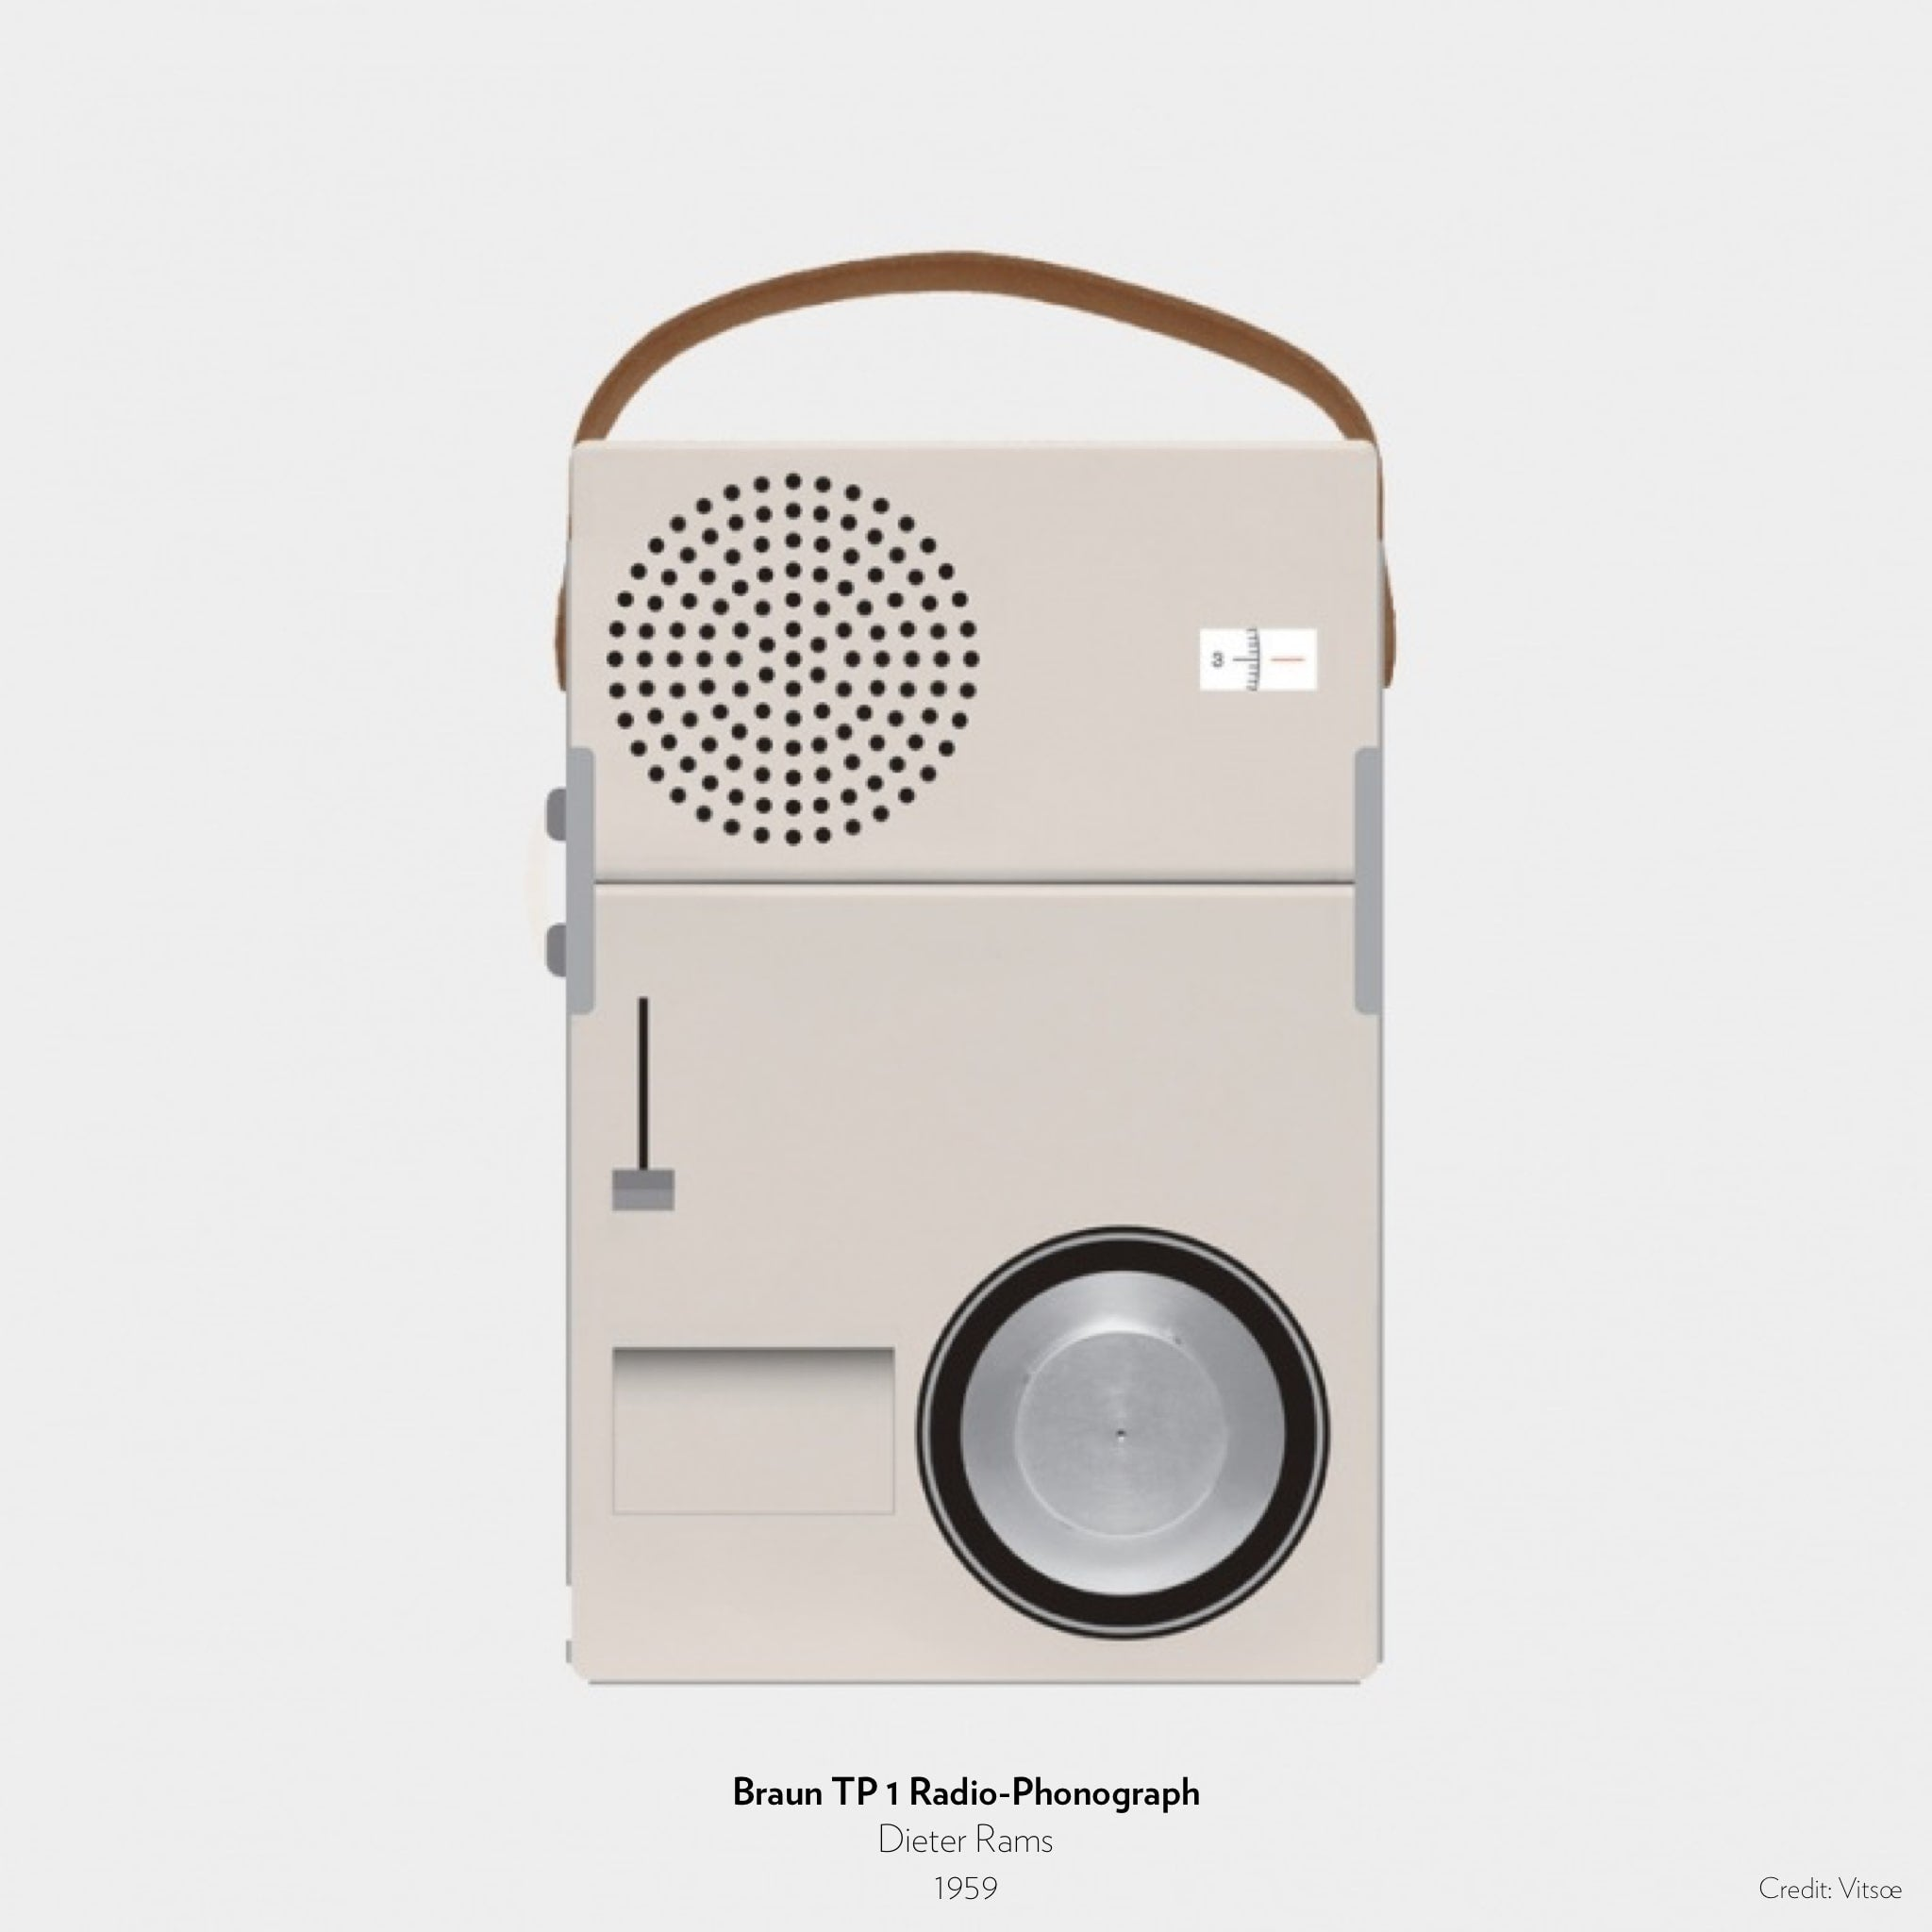 Braun TP 1 Radio-Phonograph designed by Dieter Rams in 1959.